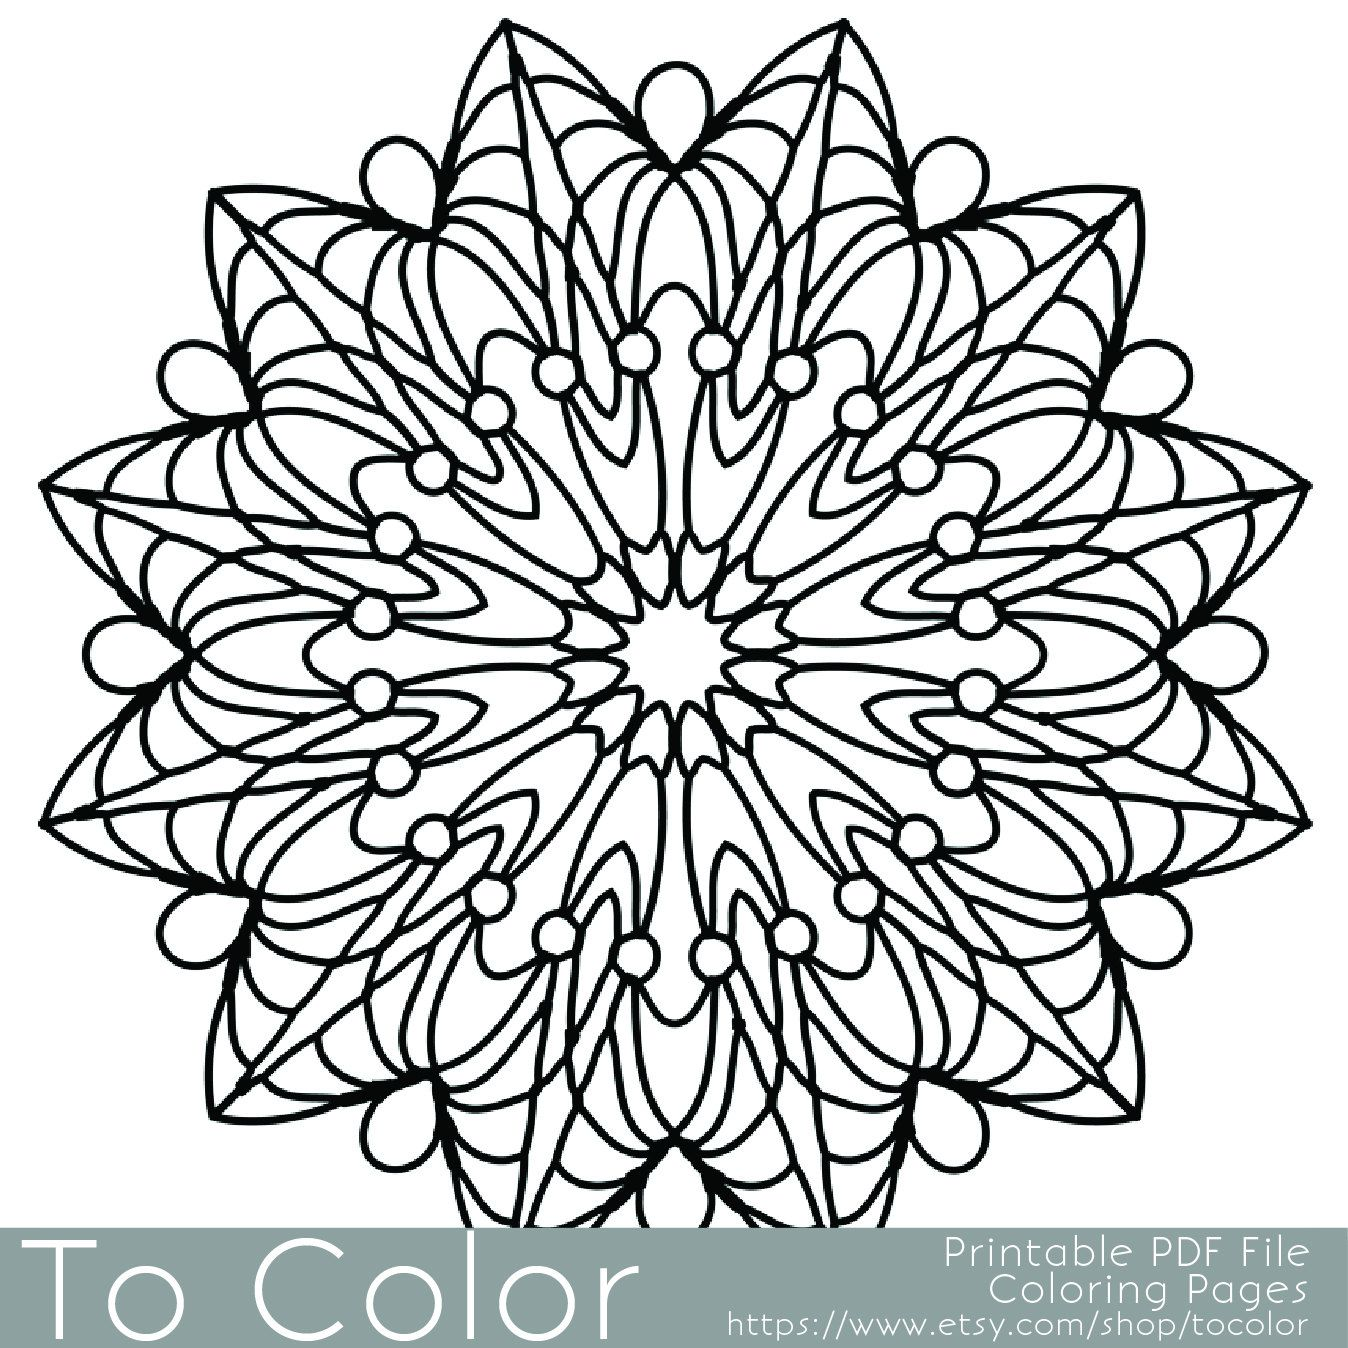 gel pen coloring pages Pin by Ronnie Uberman on Coloring books for grown ups | Pinterest  gel pen coloring pages